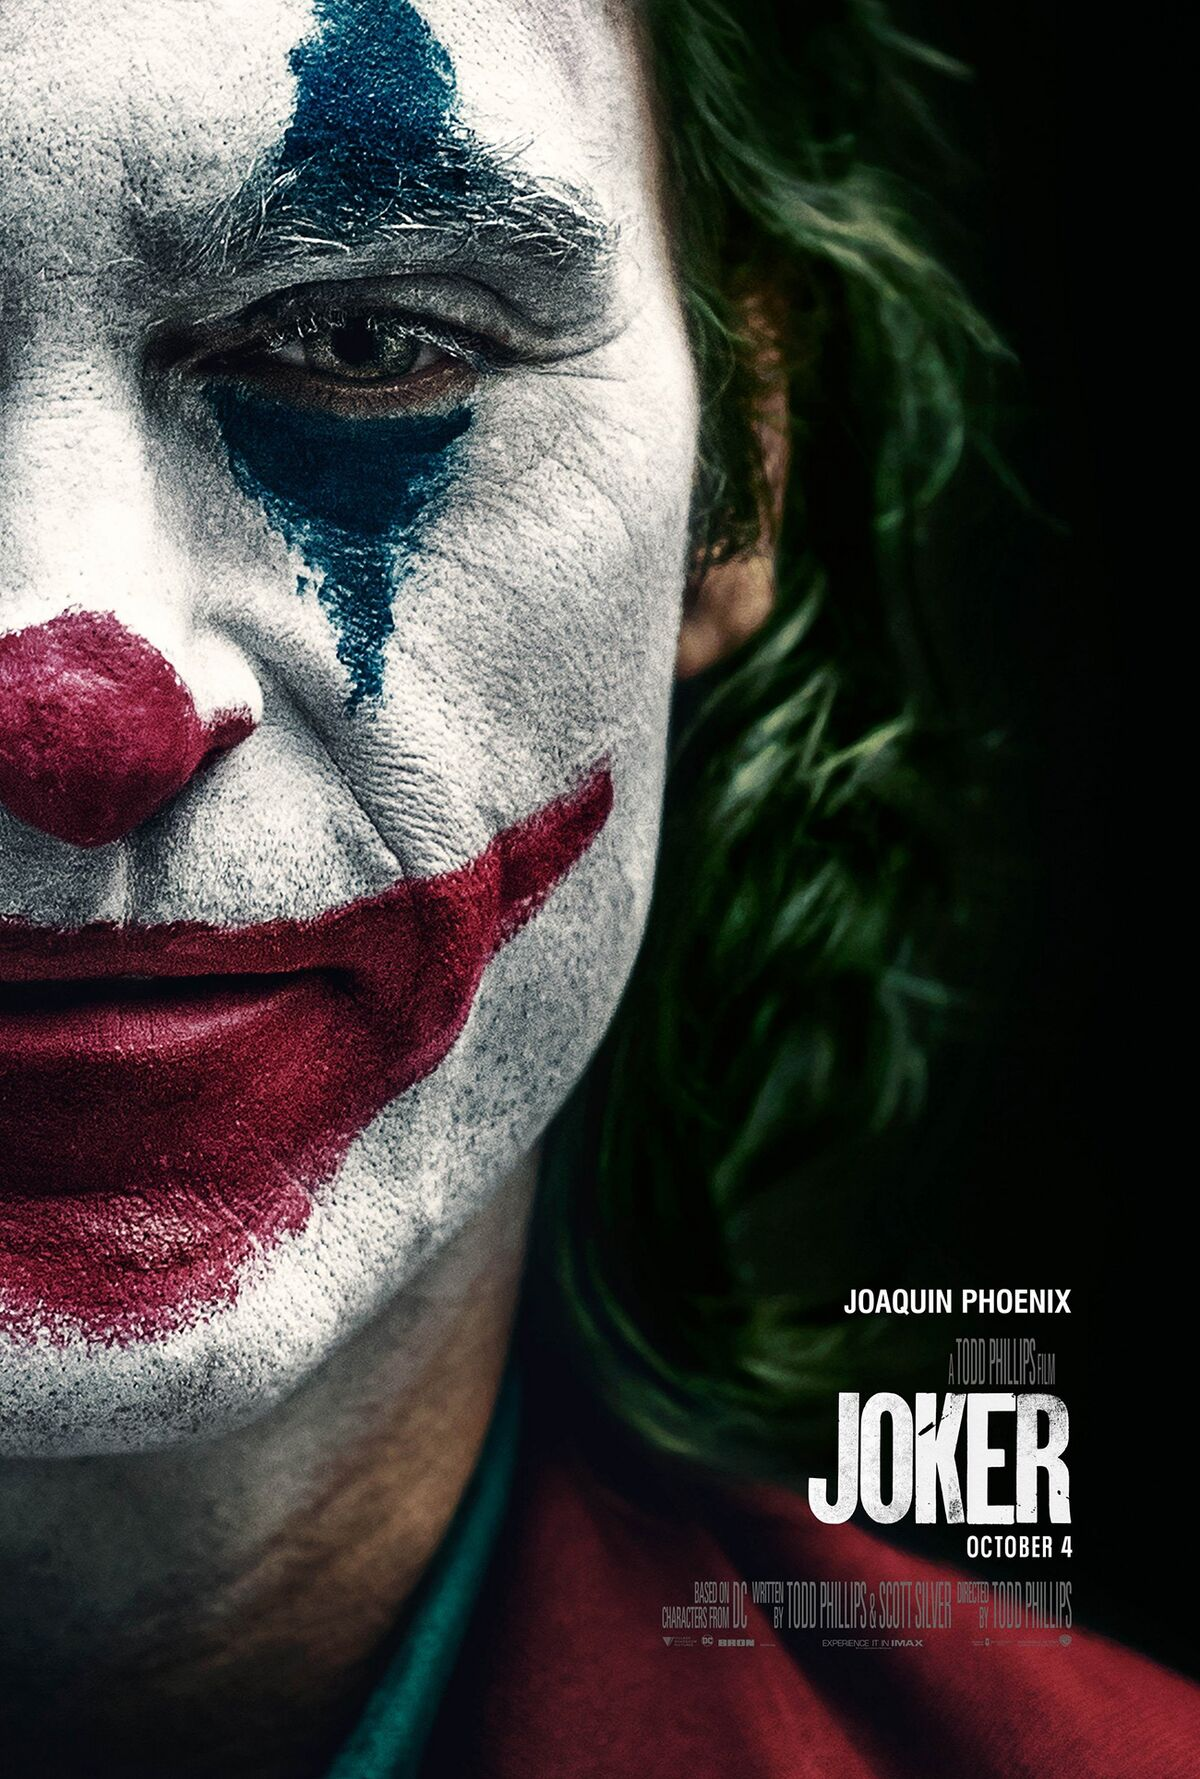 Image Result For Joker Film Bad